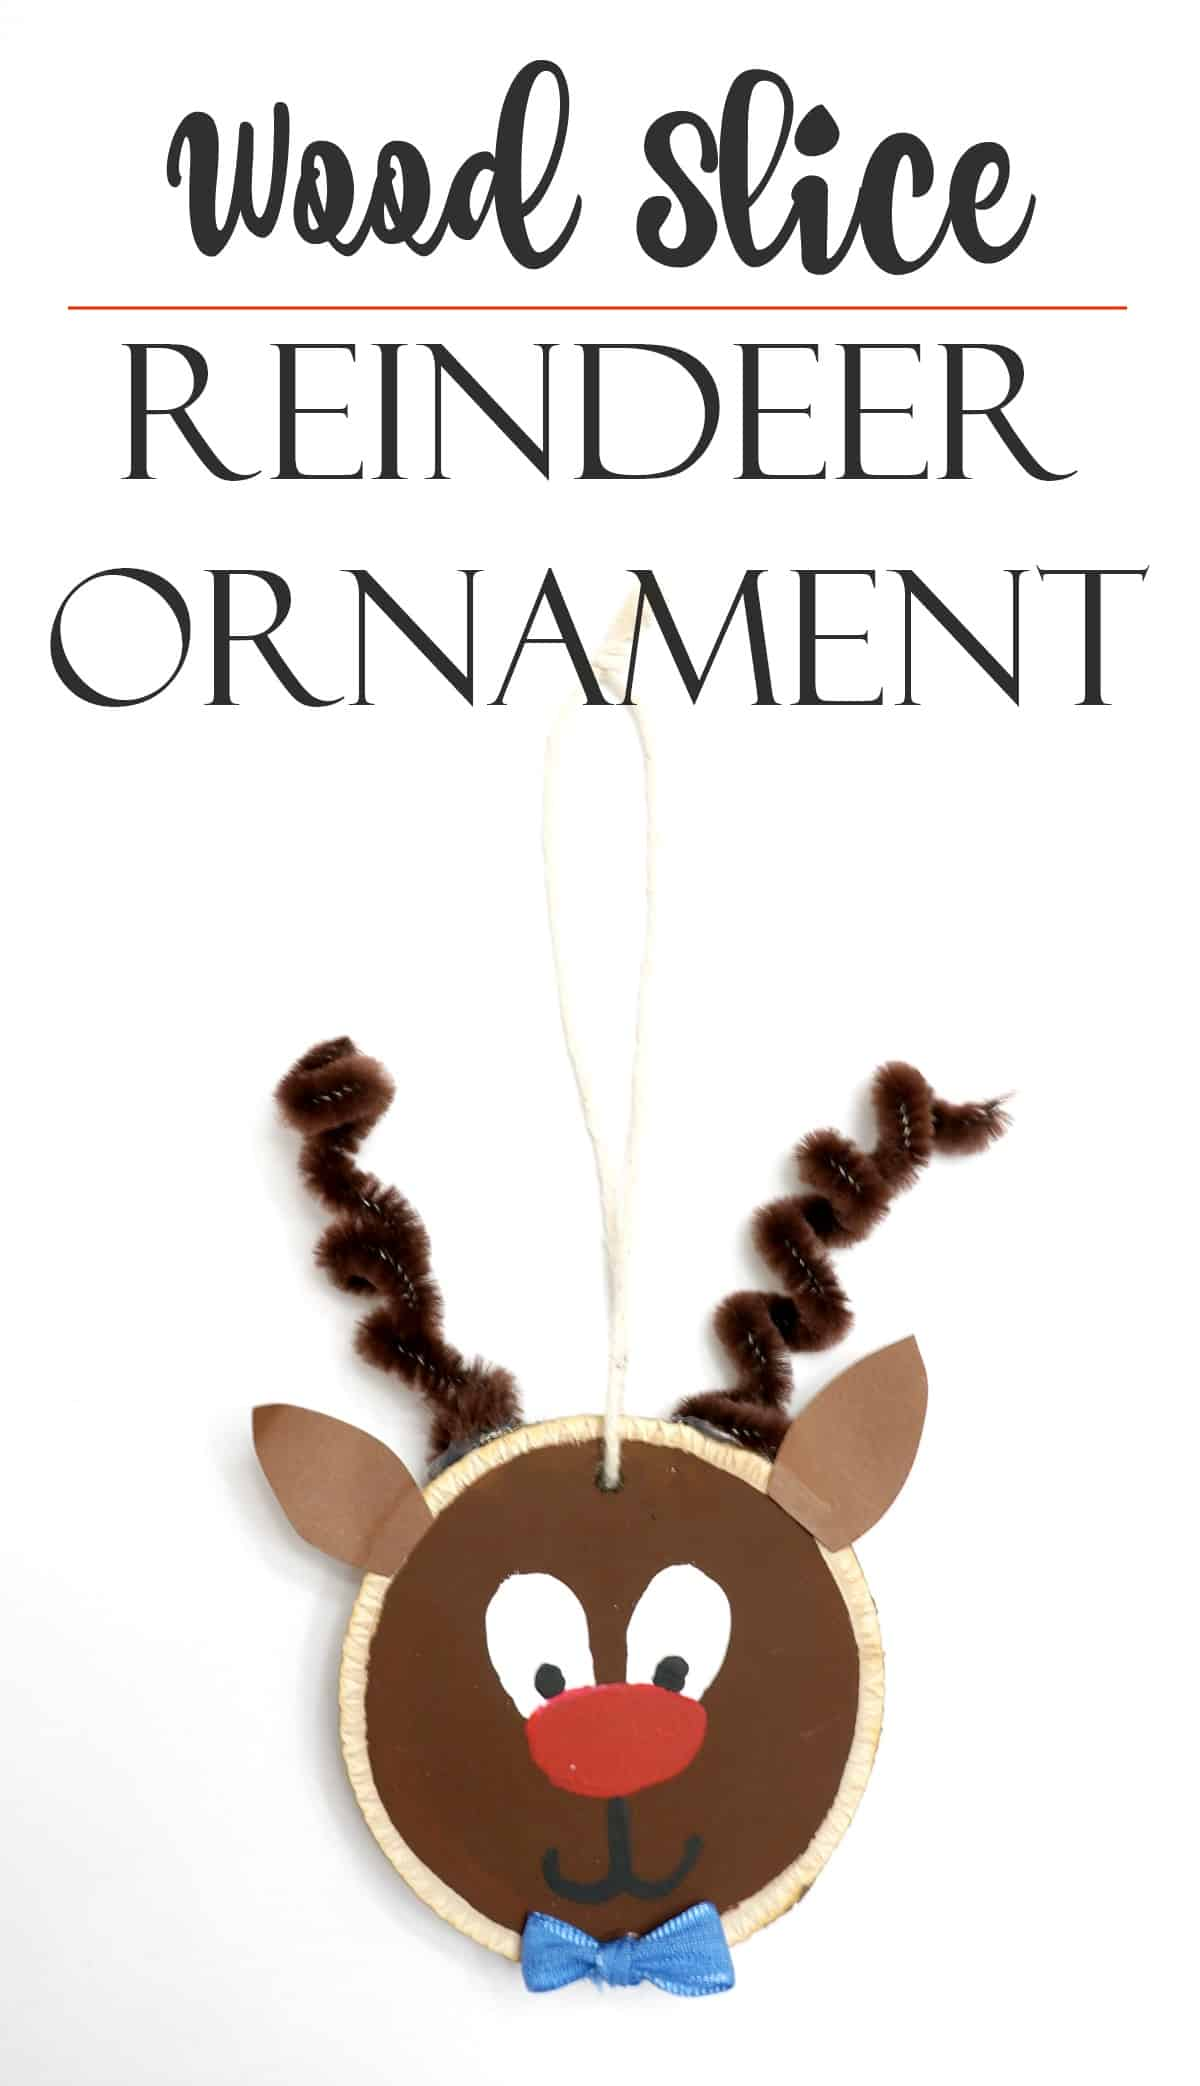 A cute reindeer ornament made with a wood slice